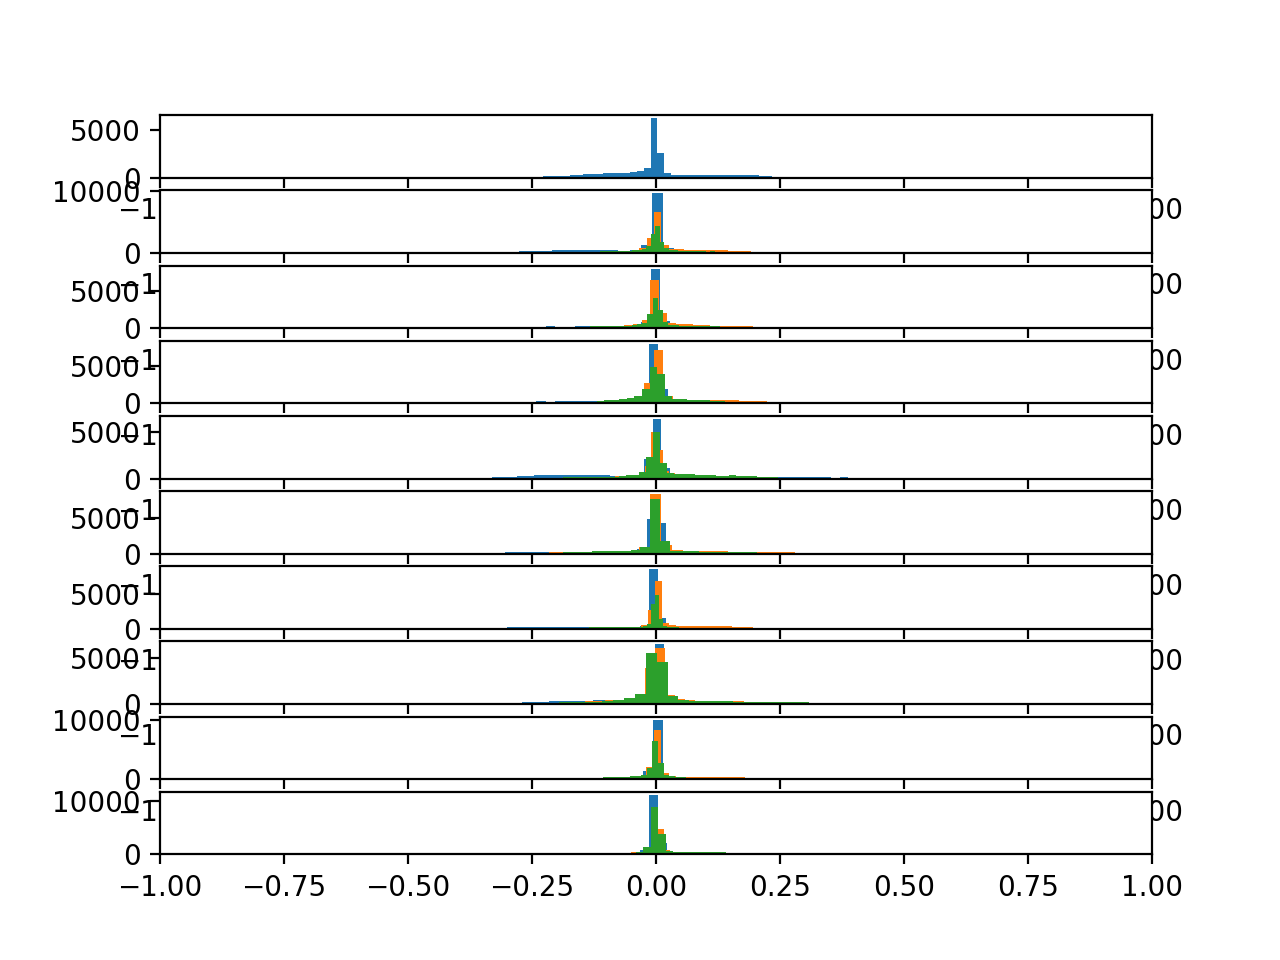 Histograms of the body acceleration data for 10 subjects